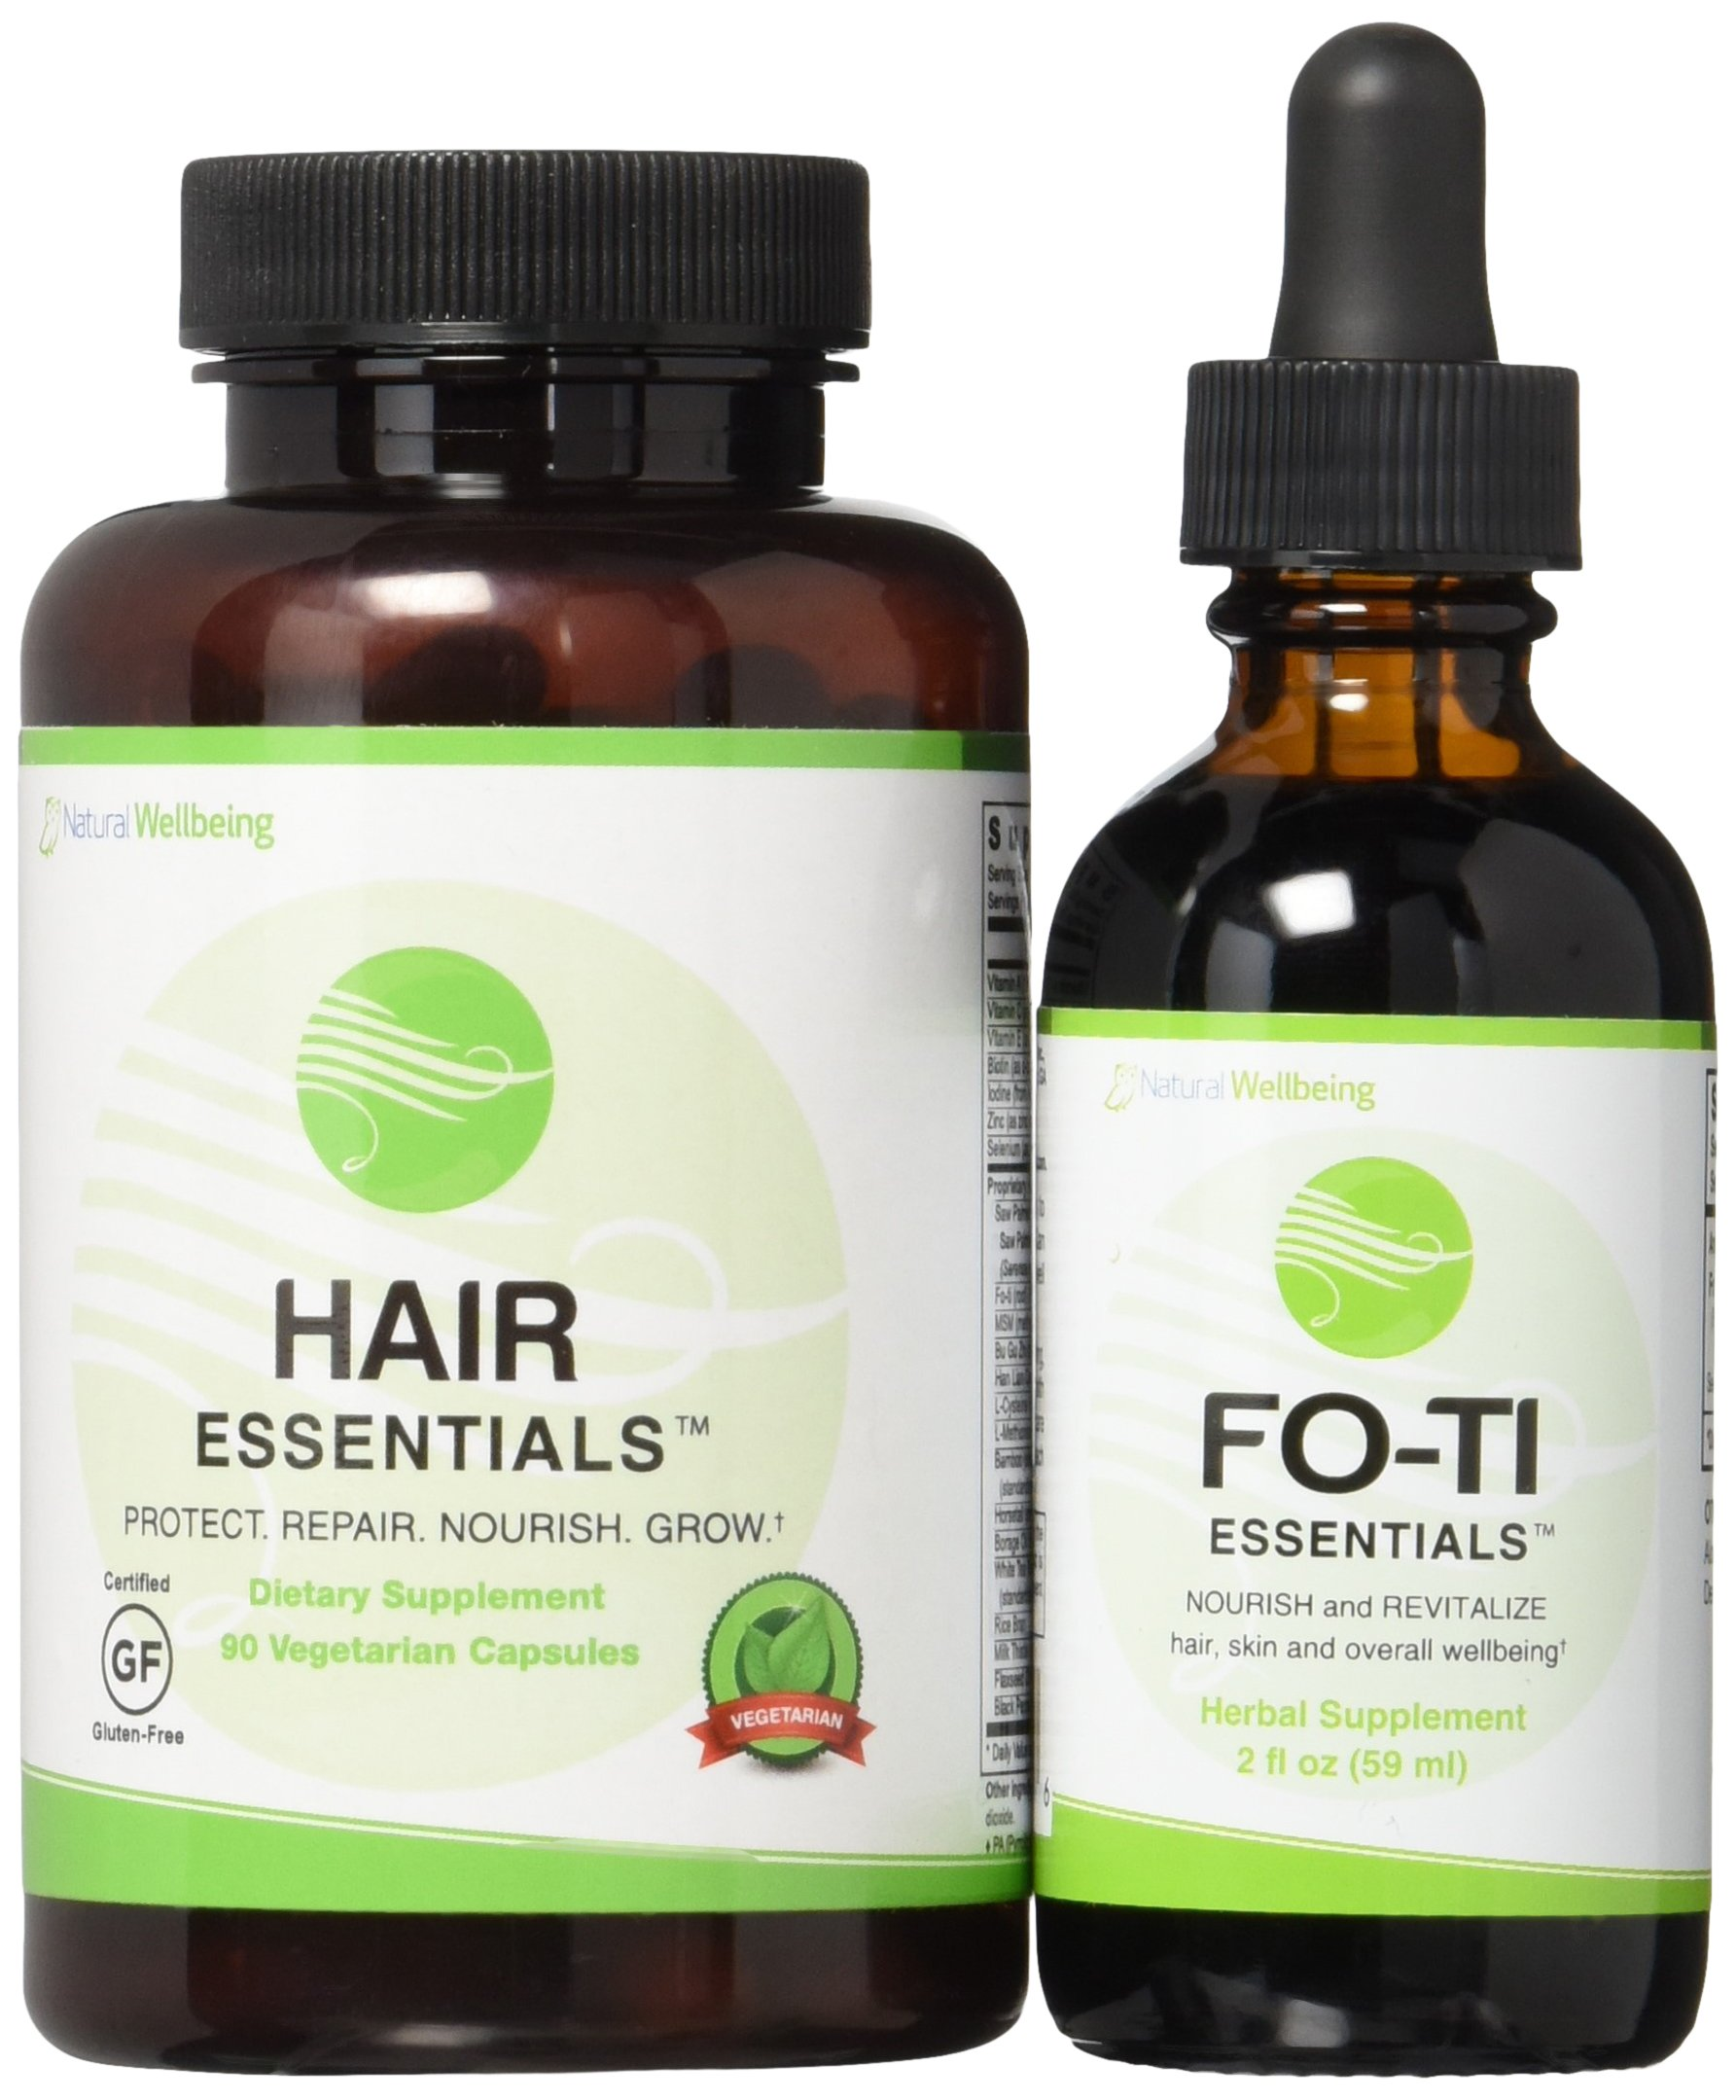 How Effective Is Hair Essentials By Natural Wellbeing